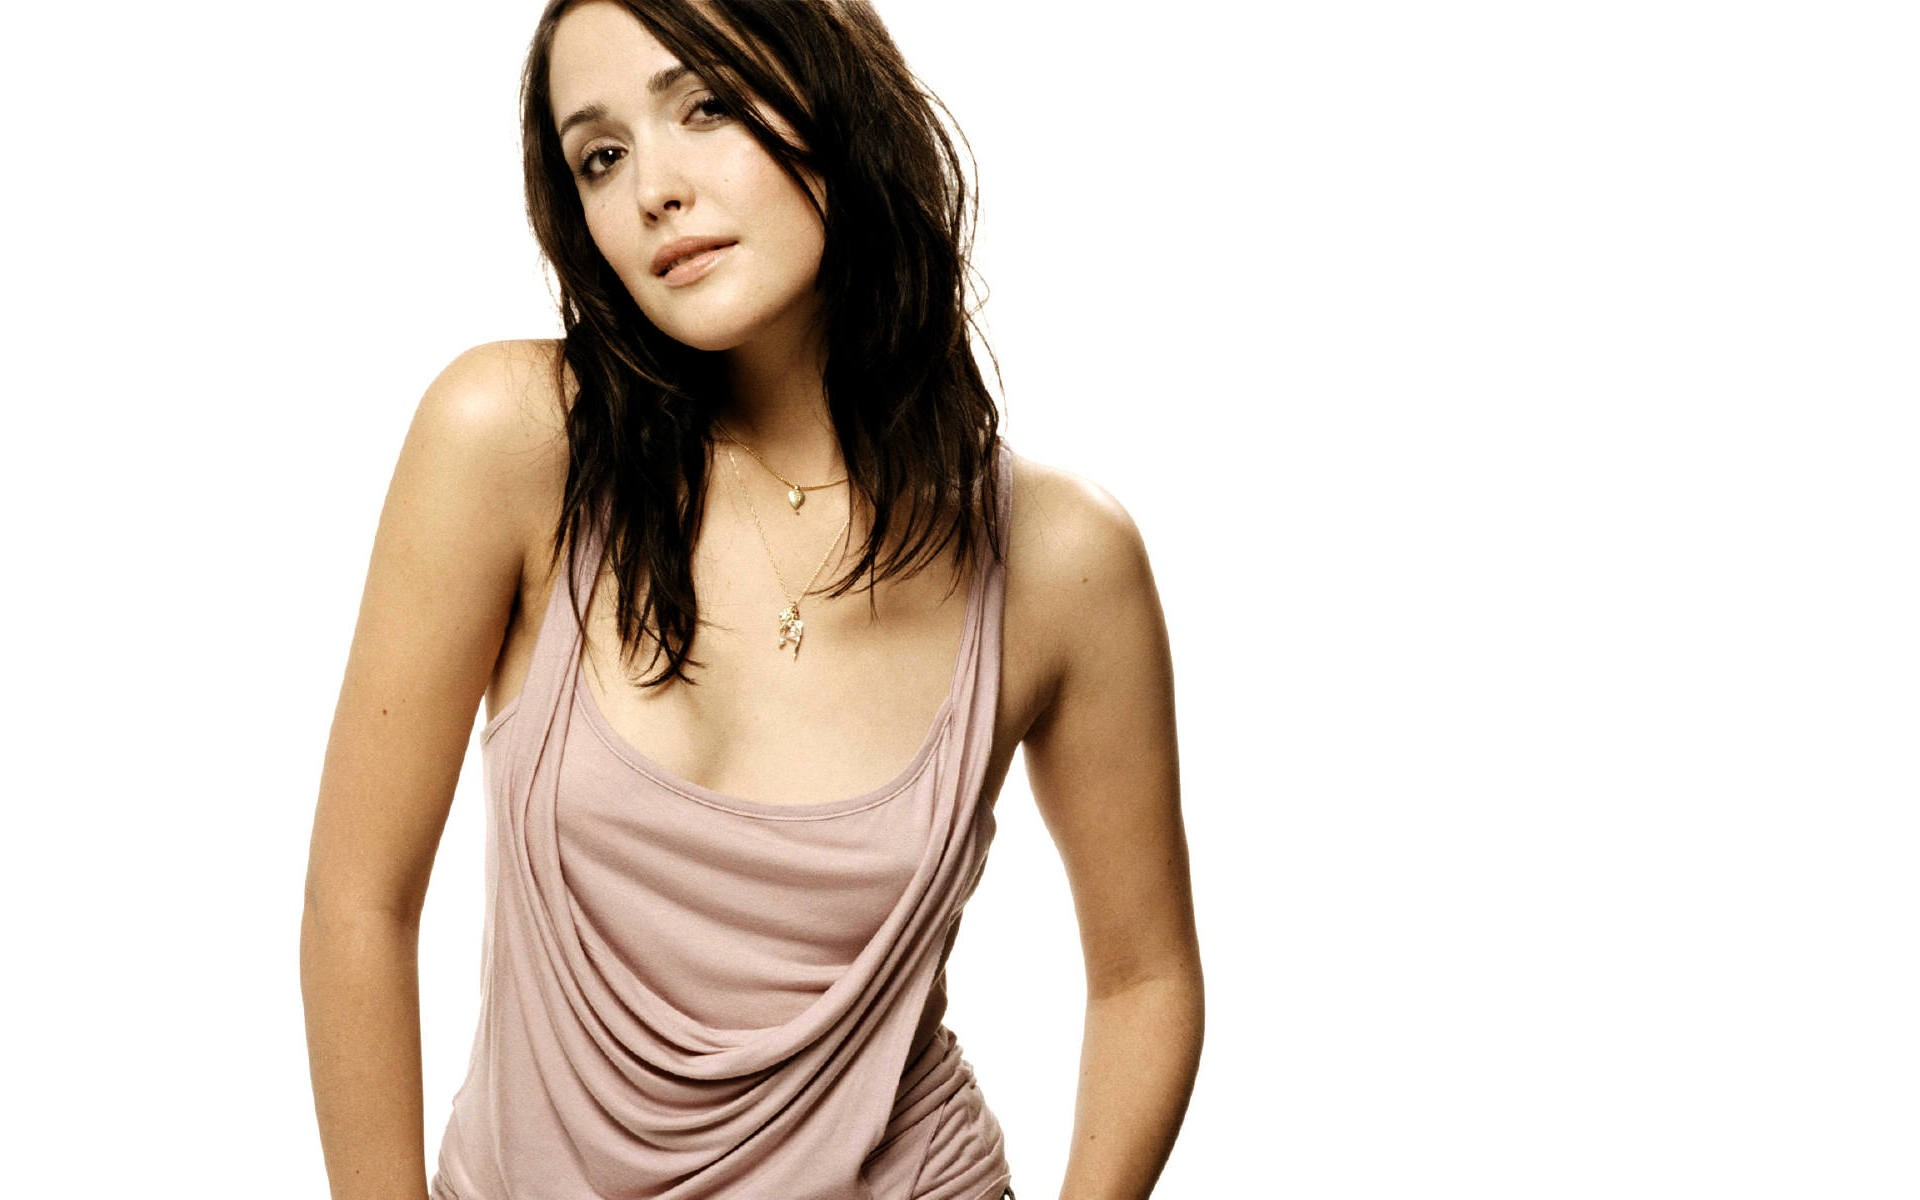 1920x1200 - Rose Byrne Wallpapers 24